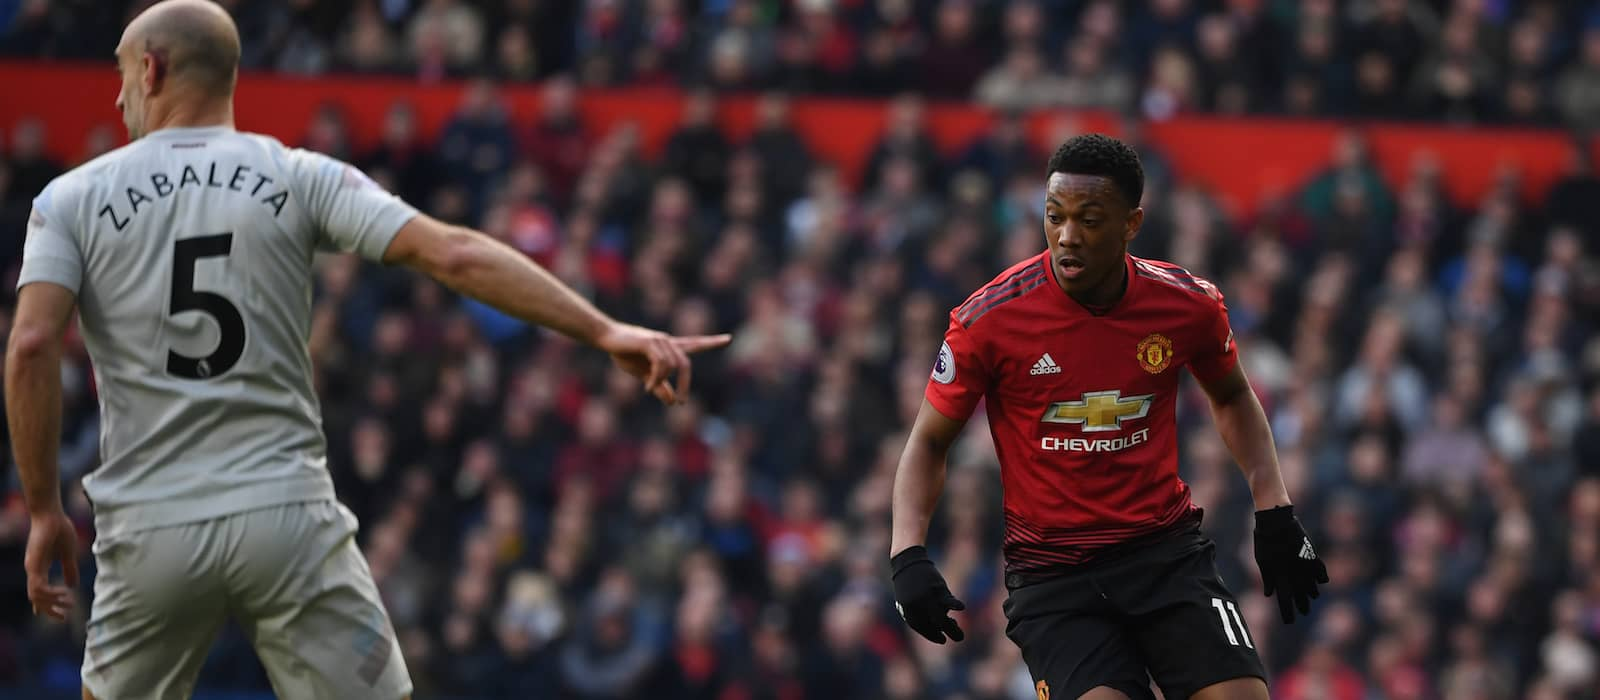 Ole Gunnar Solskjaer to sell Anthony Martial for this reason: report